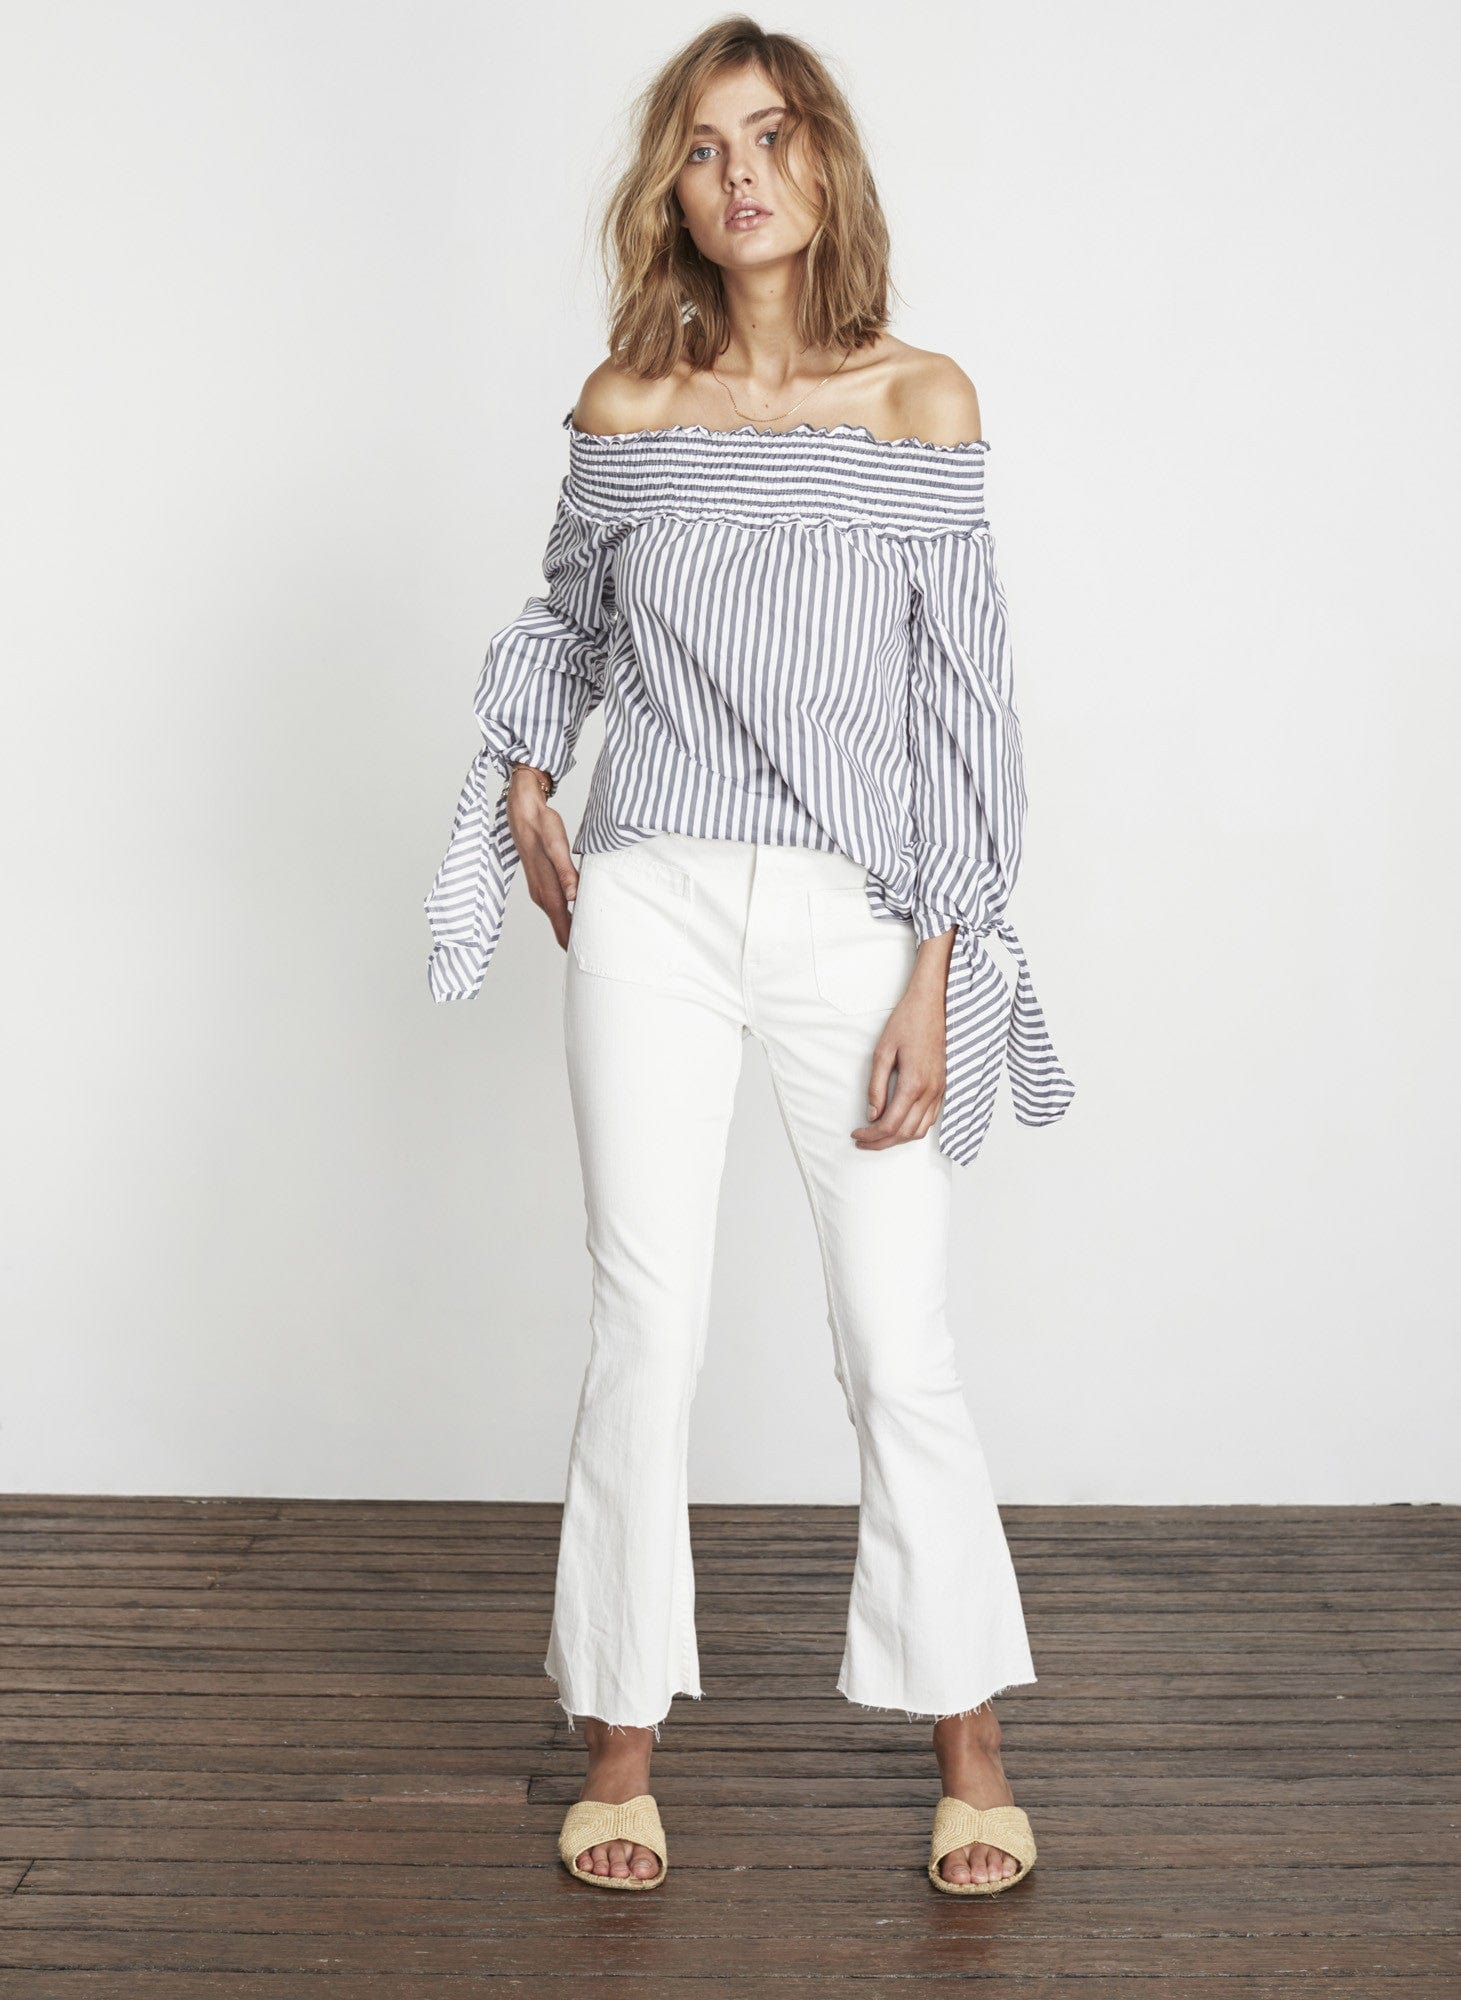 BRIGHTON STRIPE - GREY - CENTRAL PARK TOP